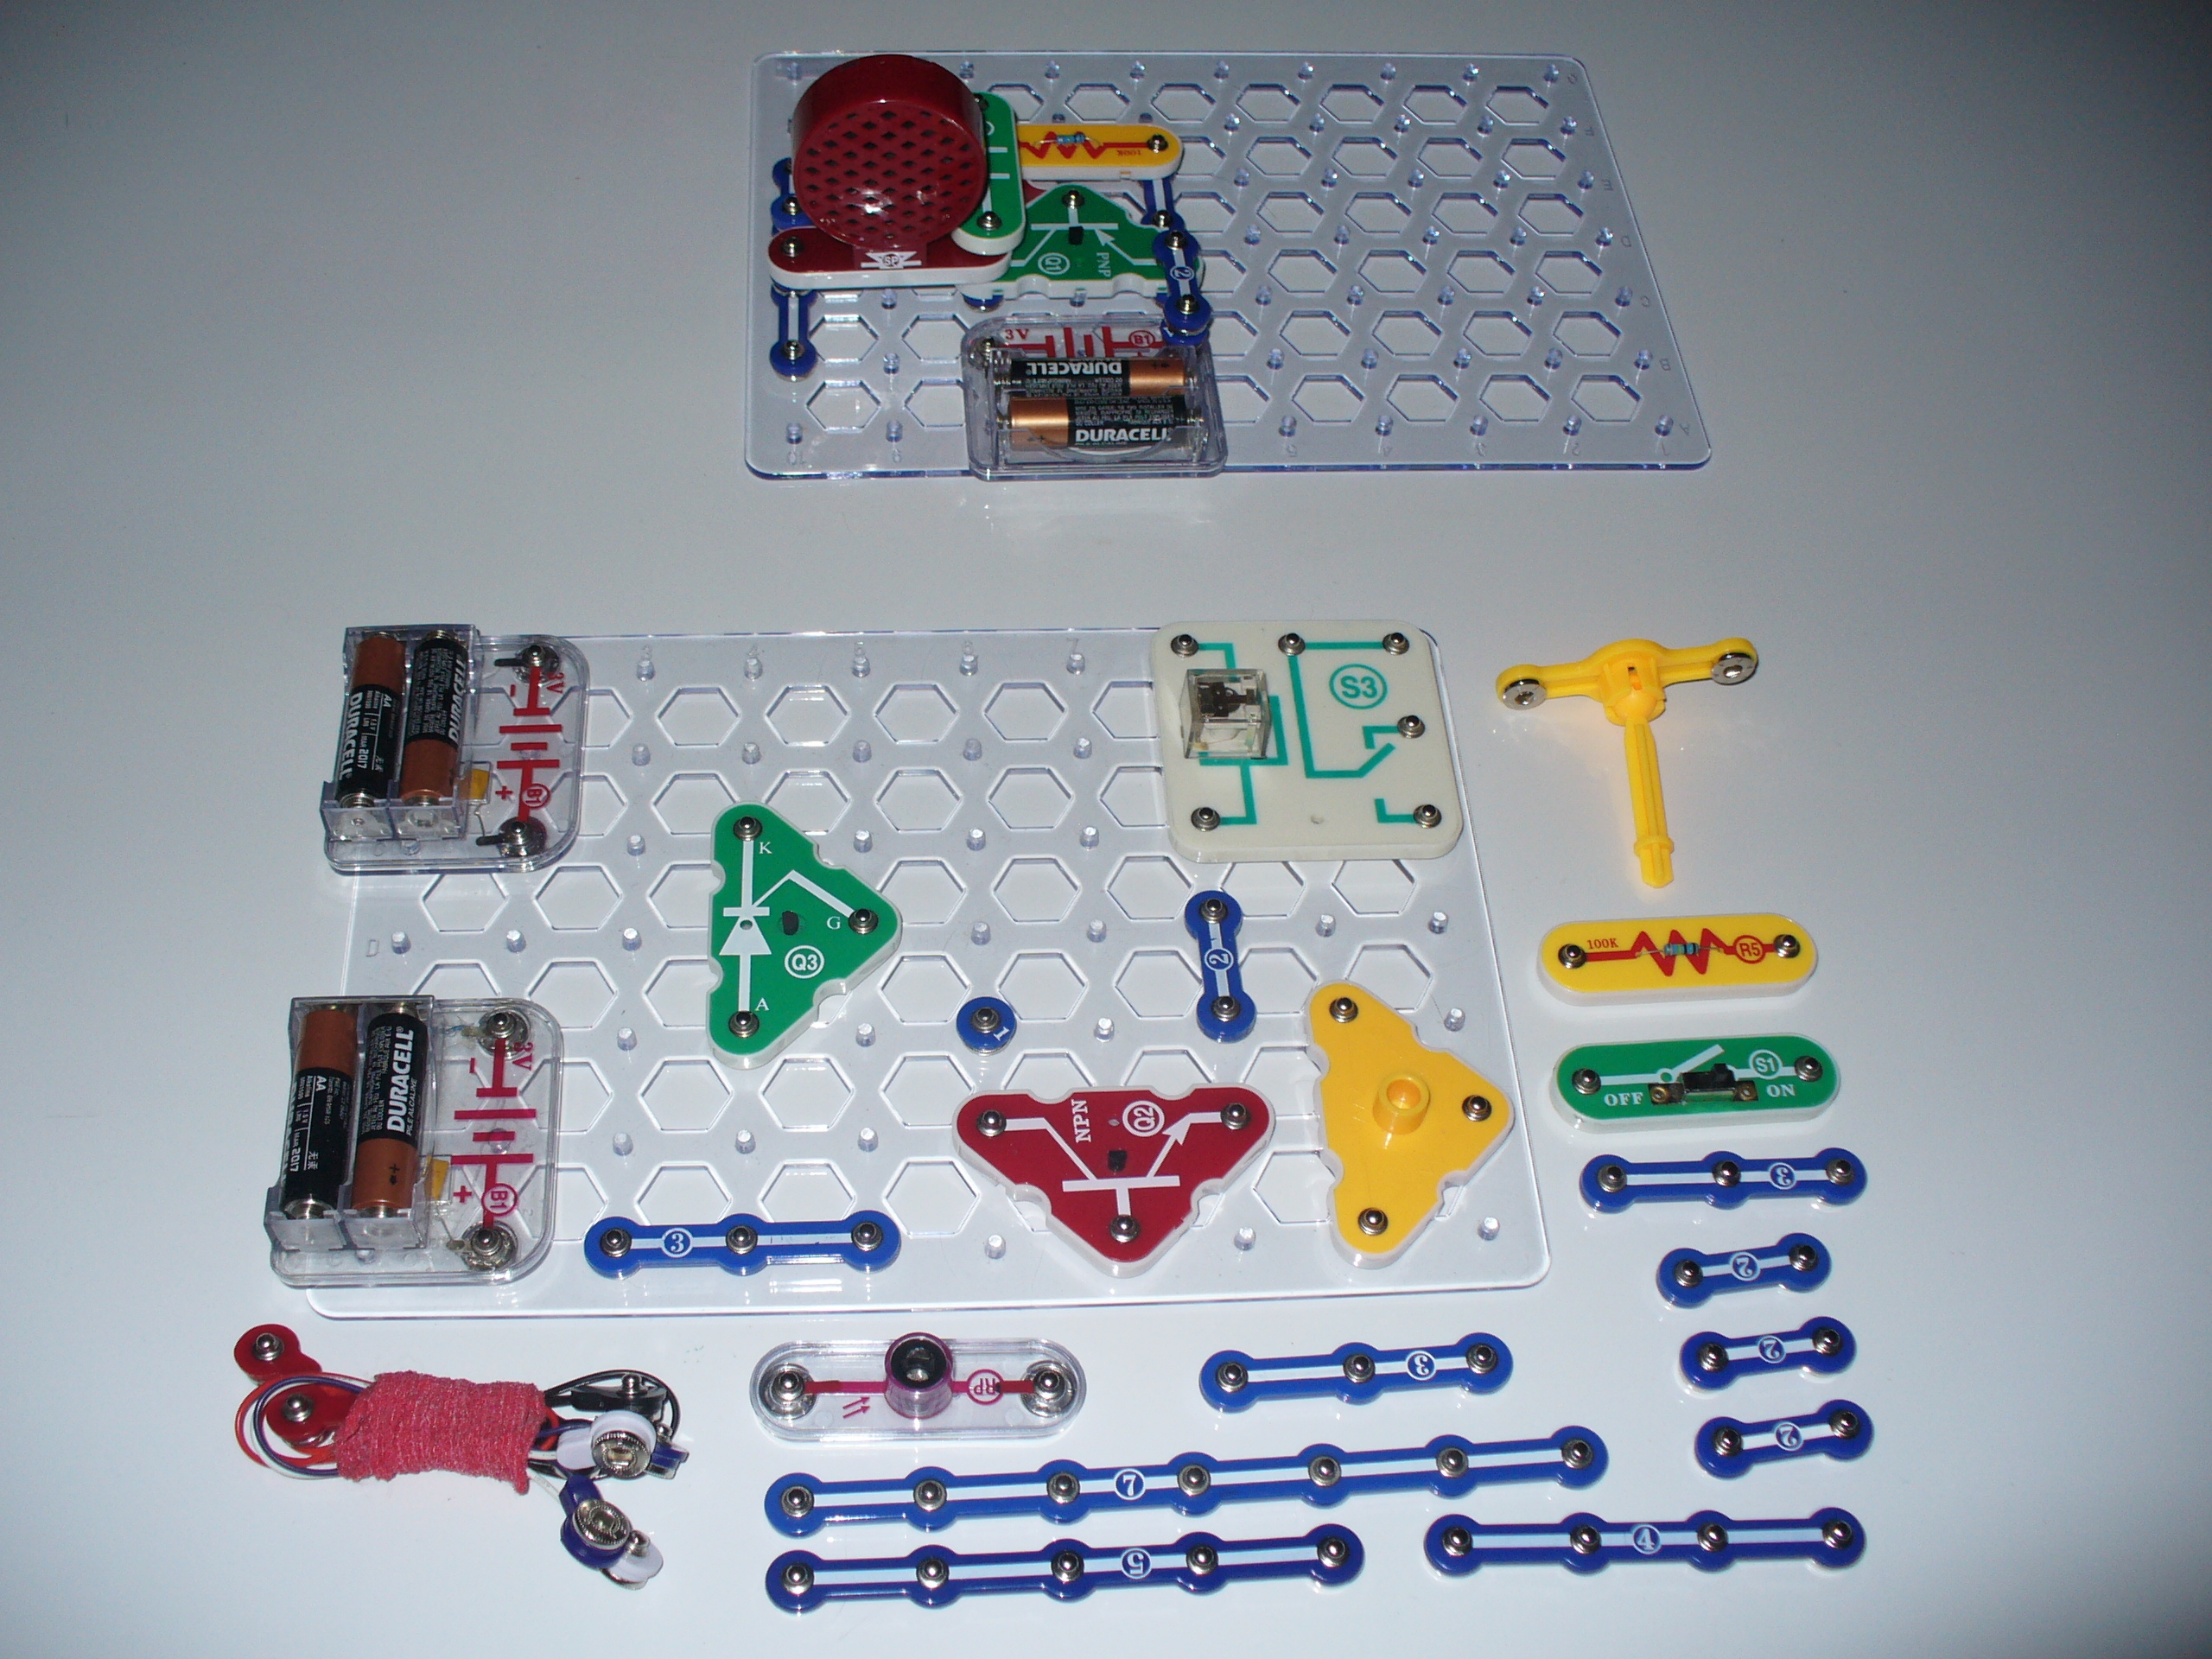 Laser Tripwire And Alarm Using Snap Circuits Make